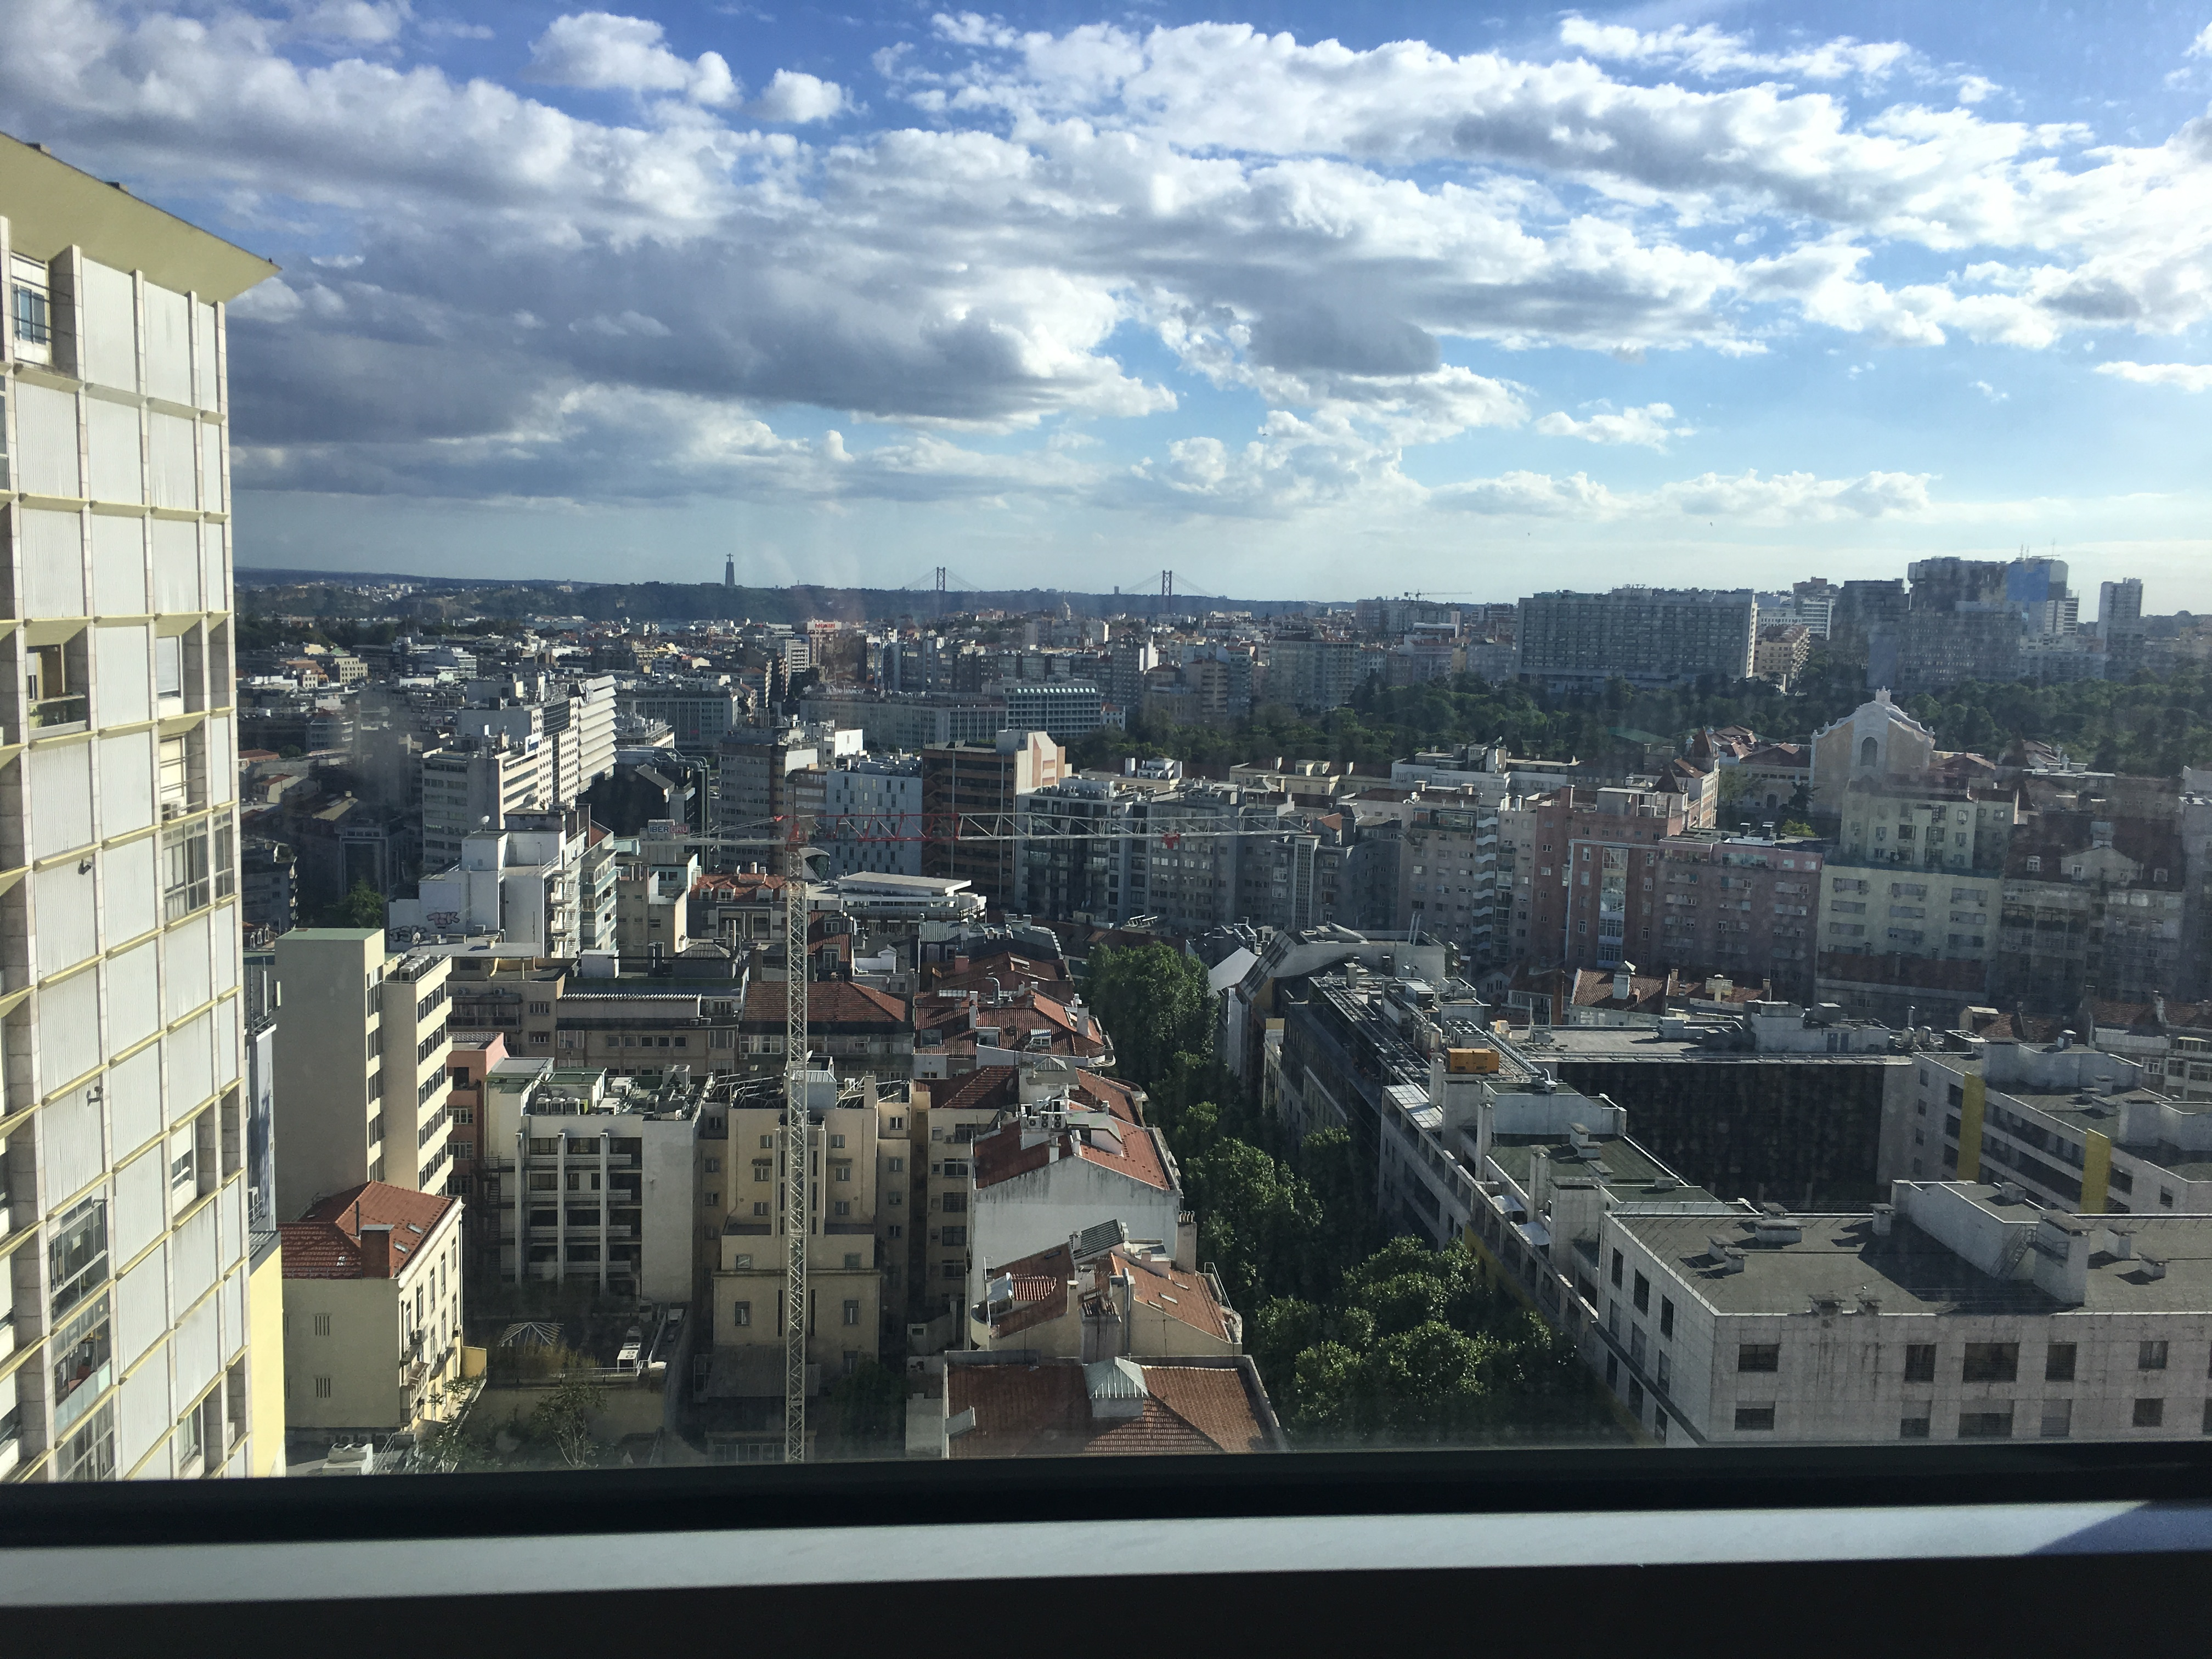 View from our hotel room in Lisbon